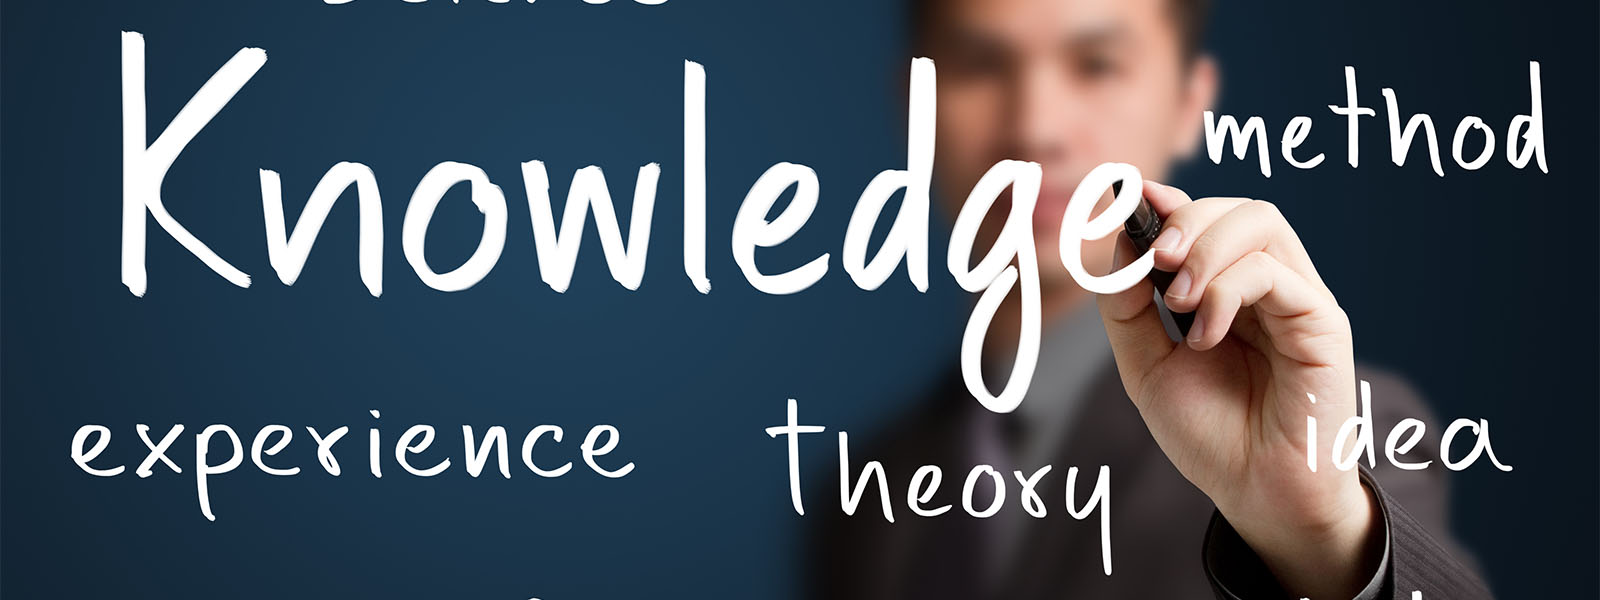 Knowledge | University of Strathclyde